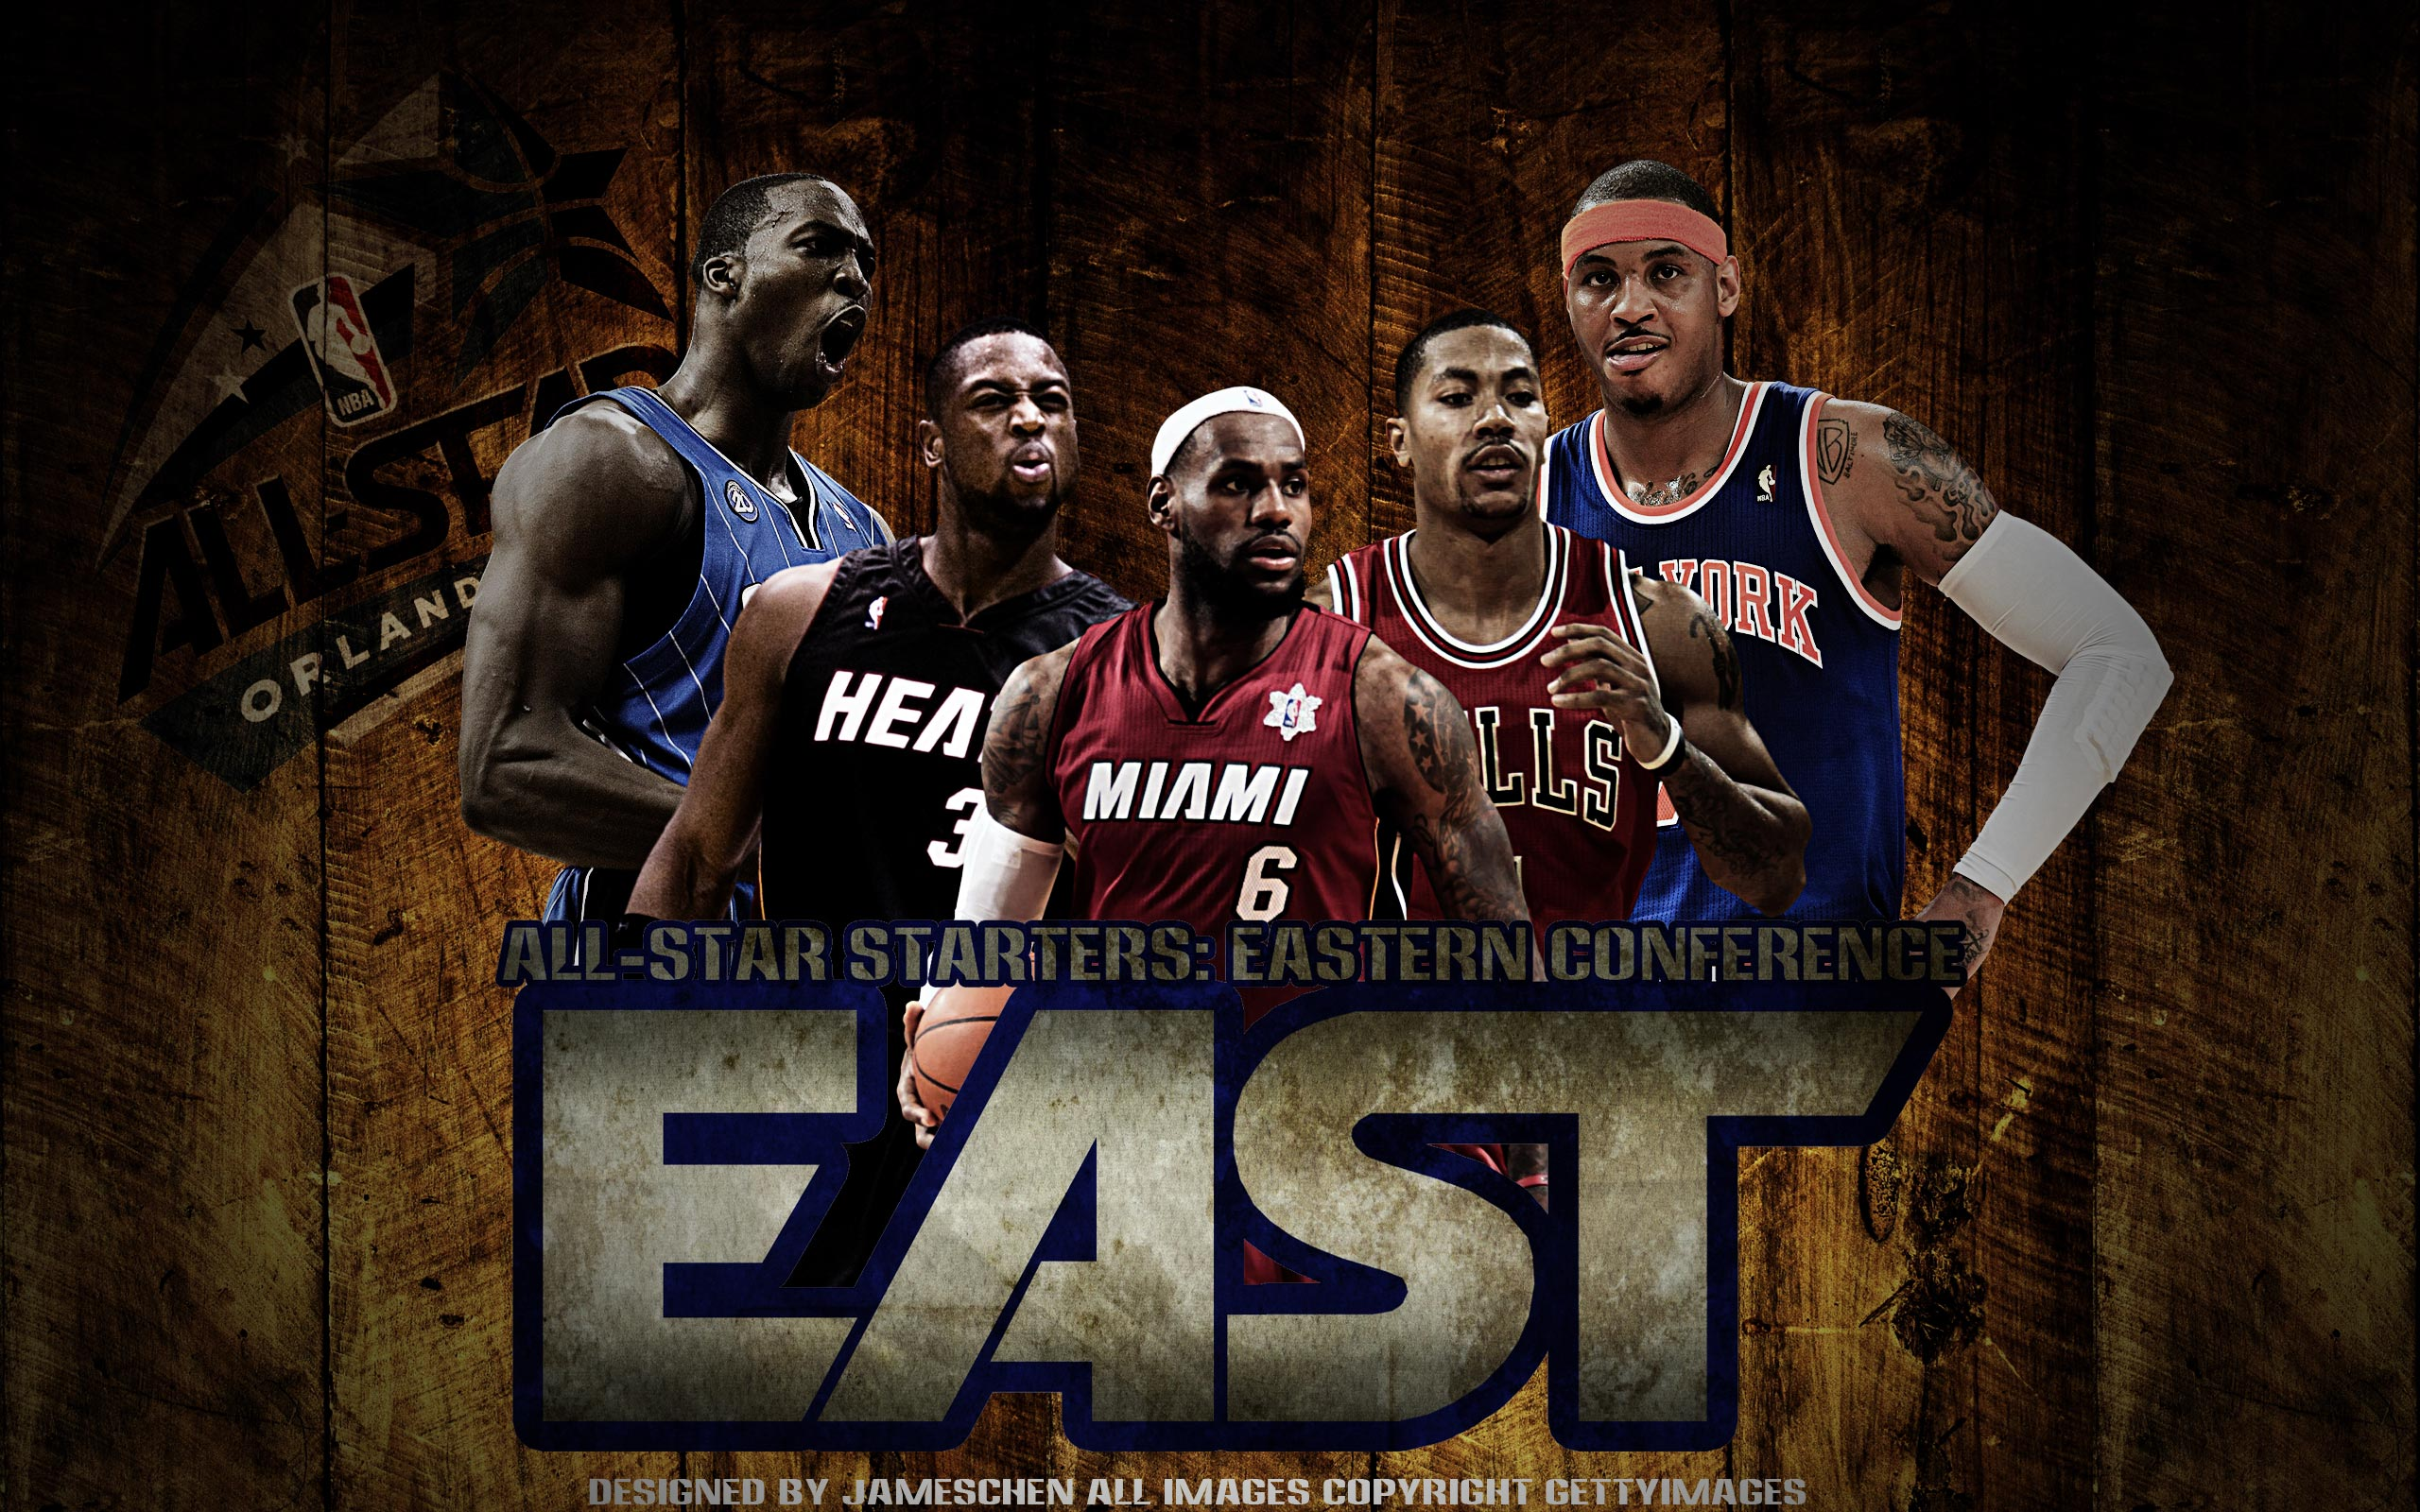 2012 NBA All-Star East Starters 2560x1600 Wallpaper